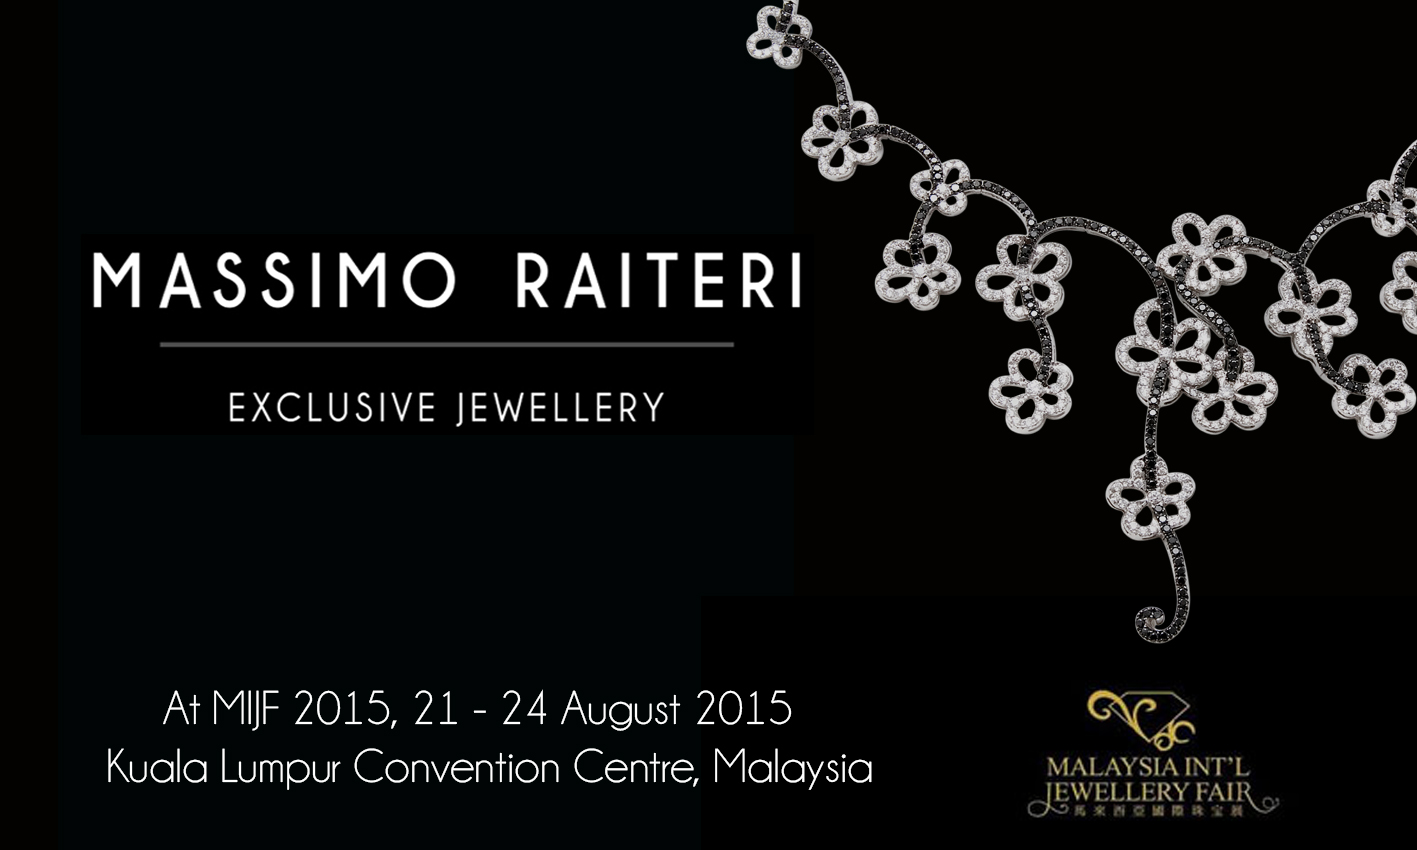 MASSIMO RAITERI AT THE MALAYSIA INTERNATIONAL JEWELLERY FAIR (MIJF) 2015